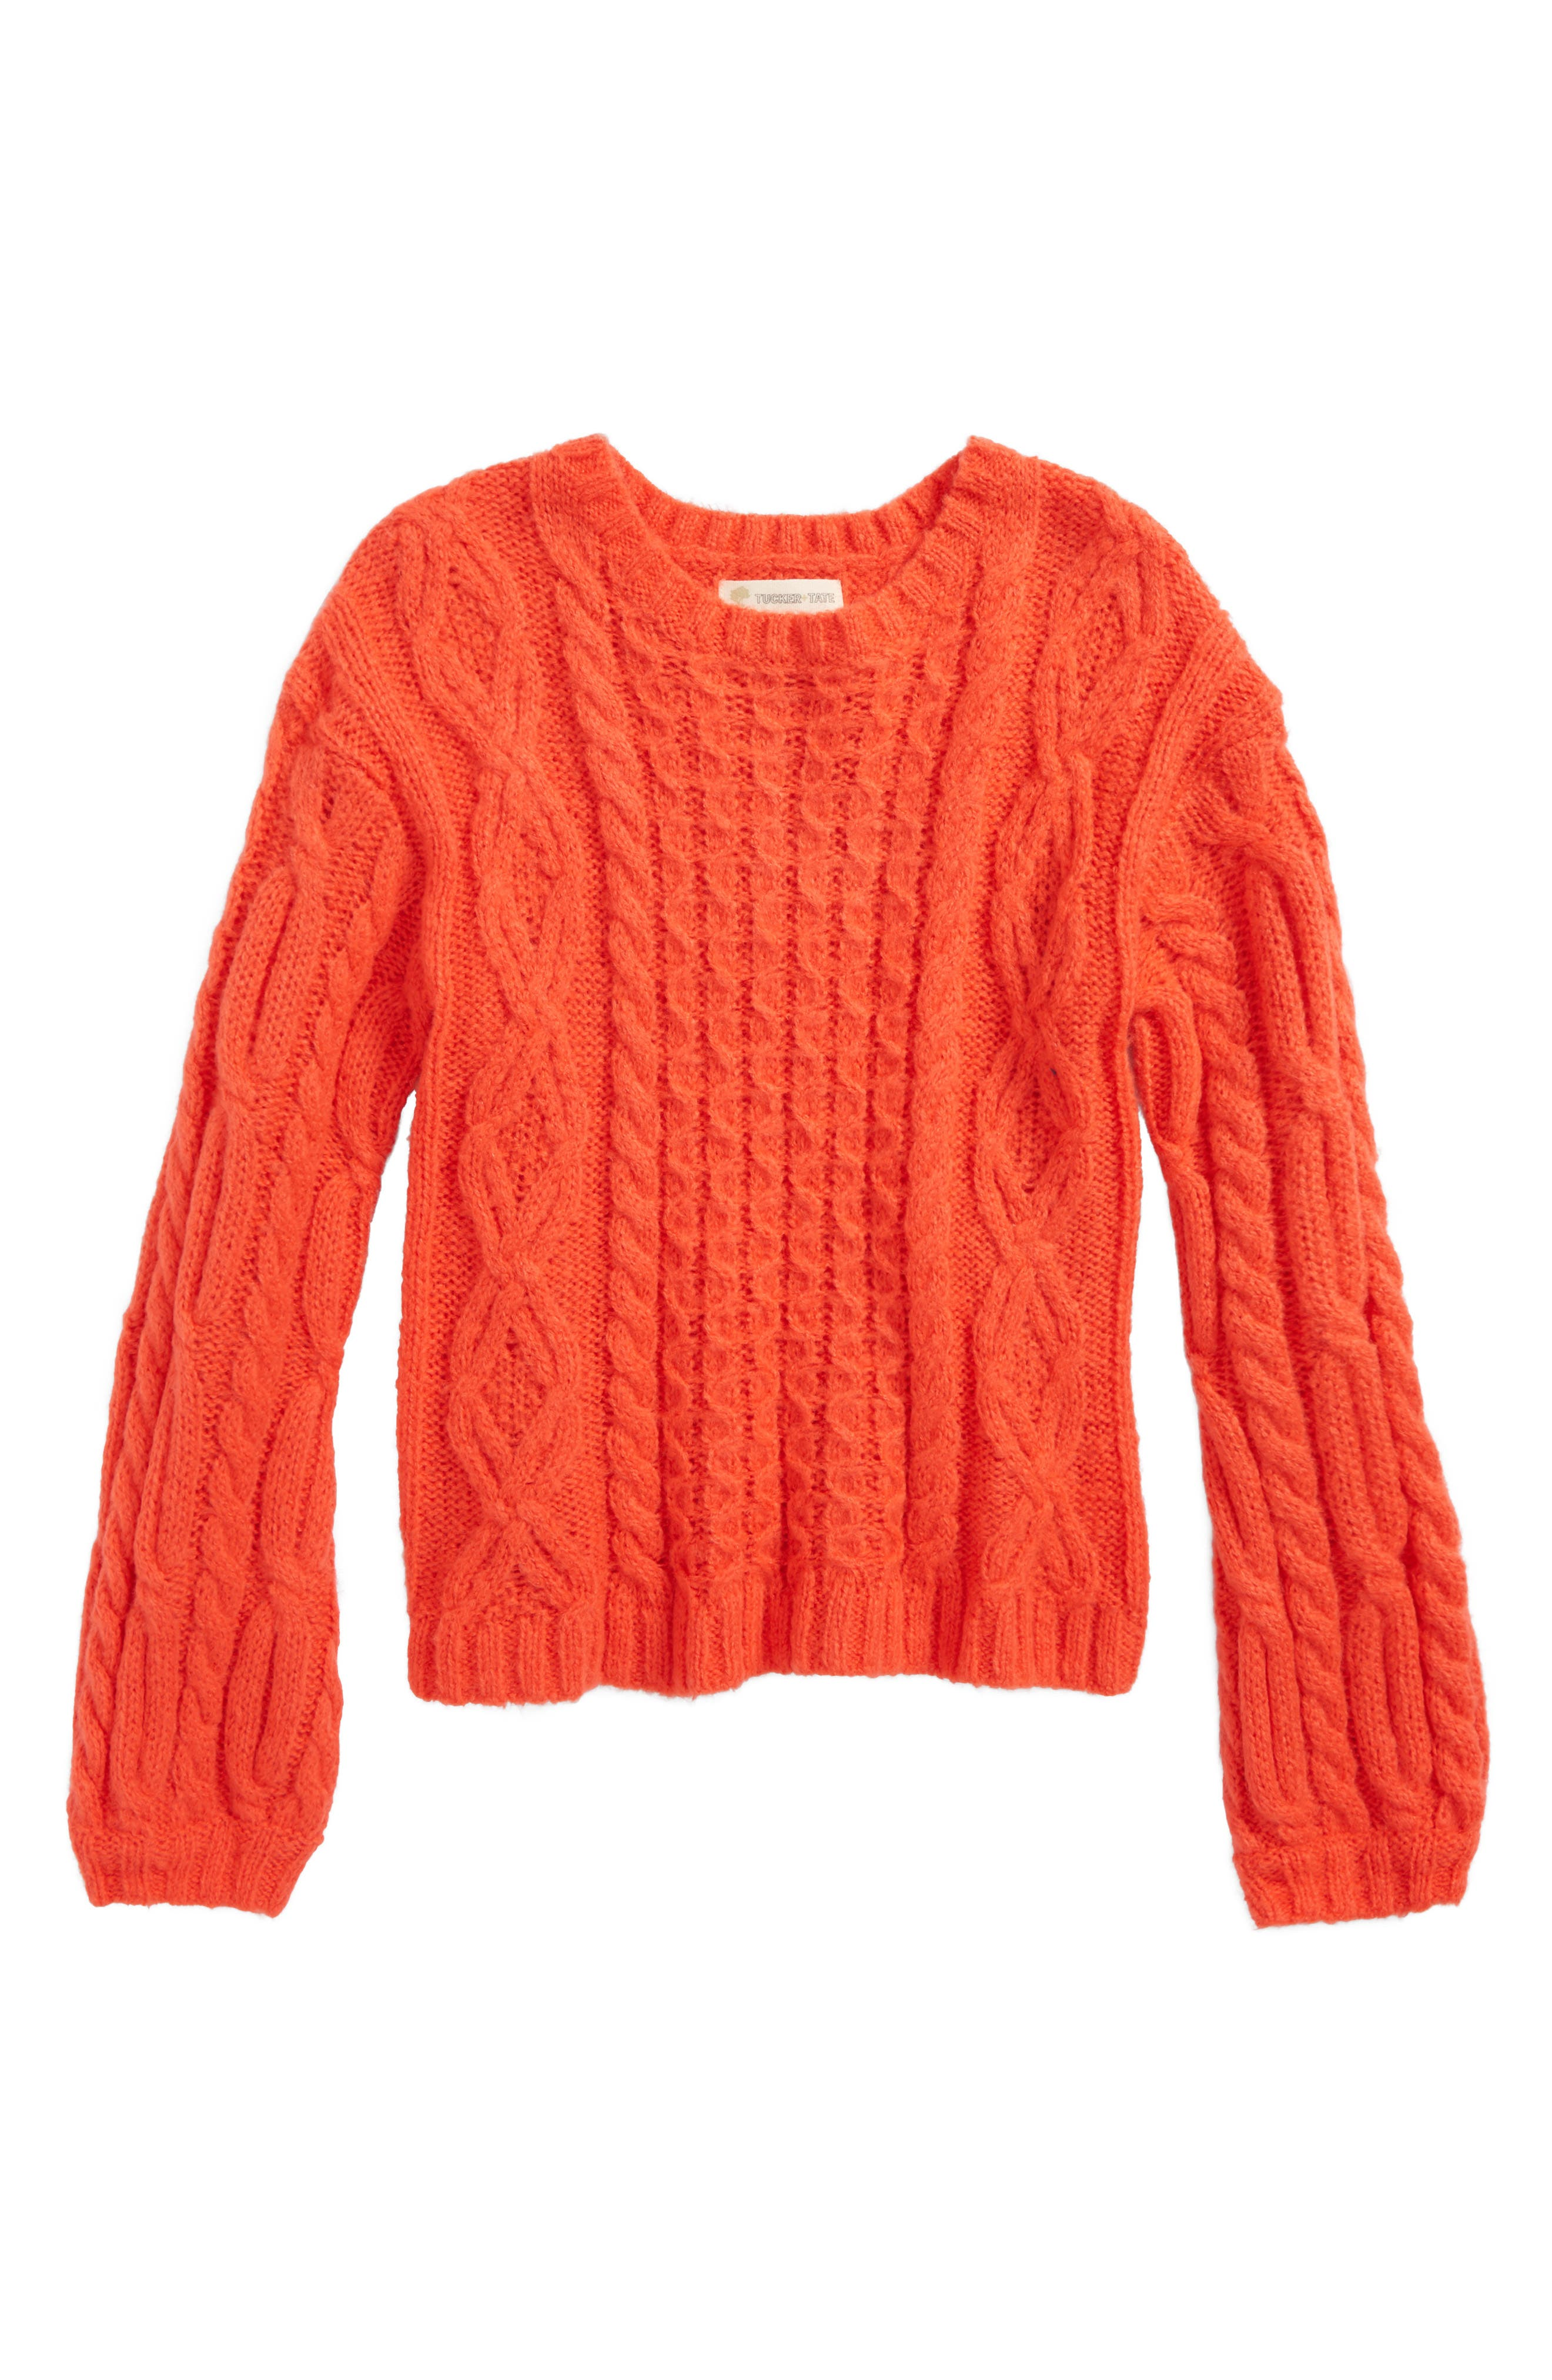 Cable Sweater,                             Main thumbnail 1, color,                             610